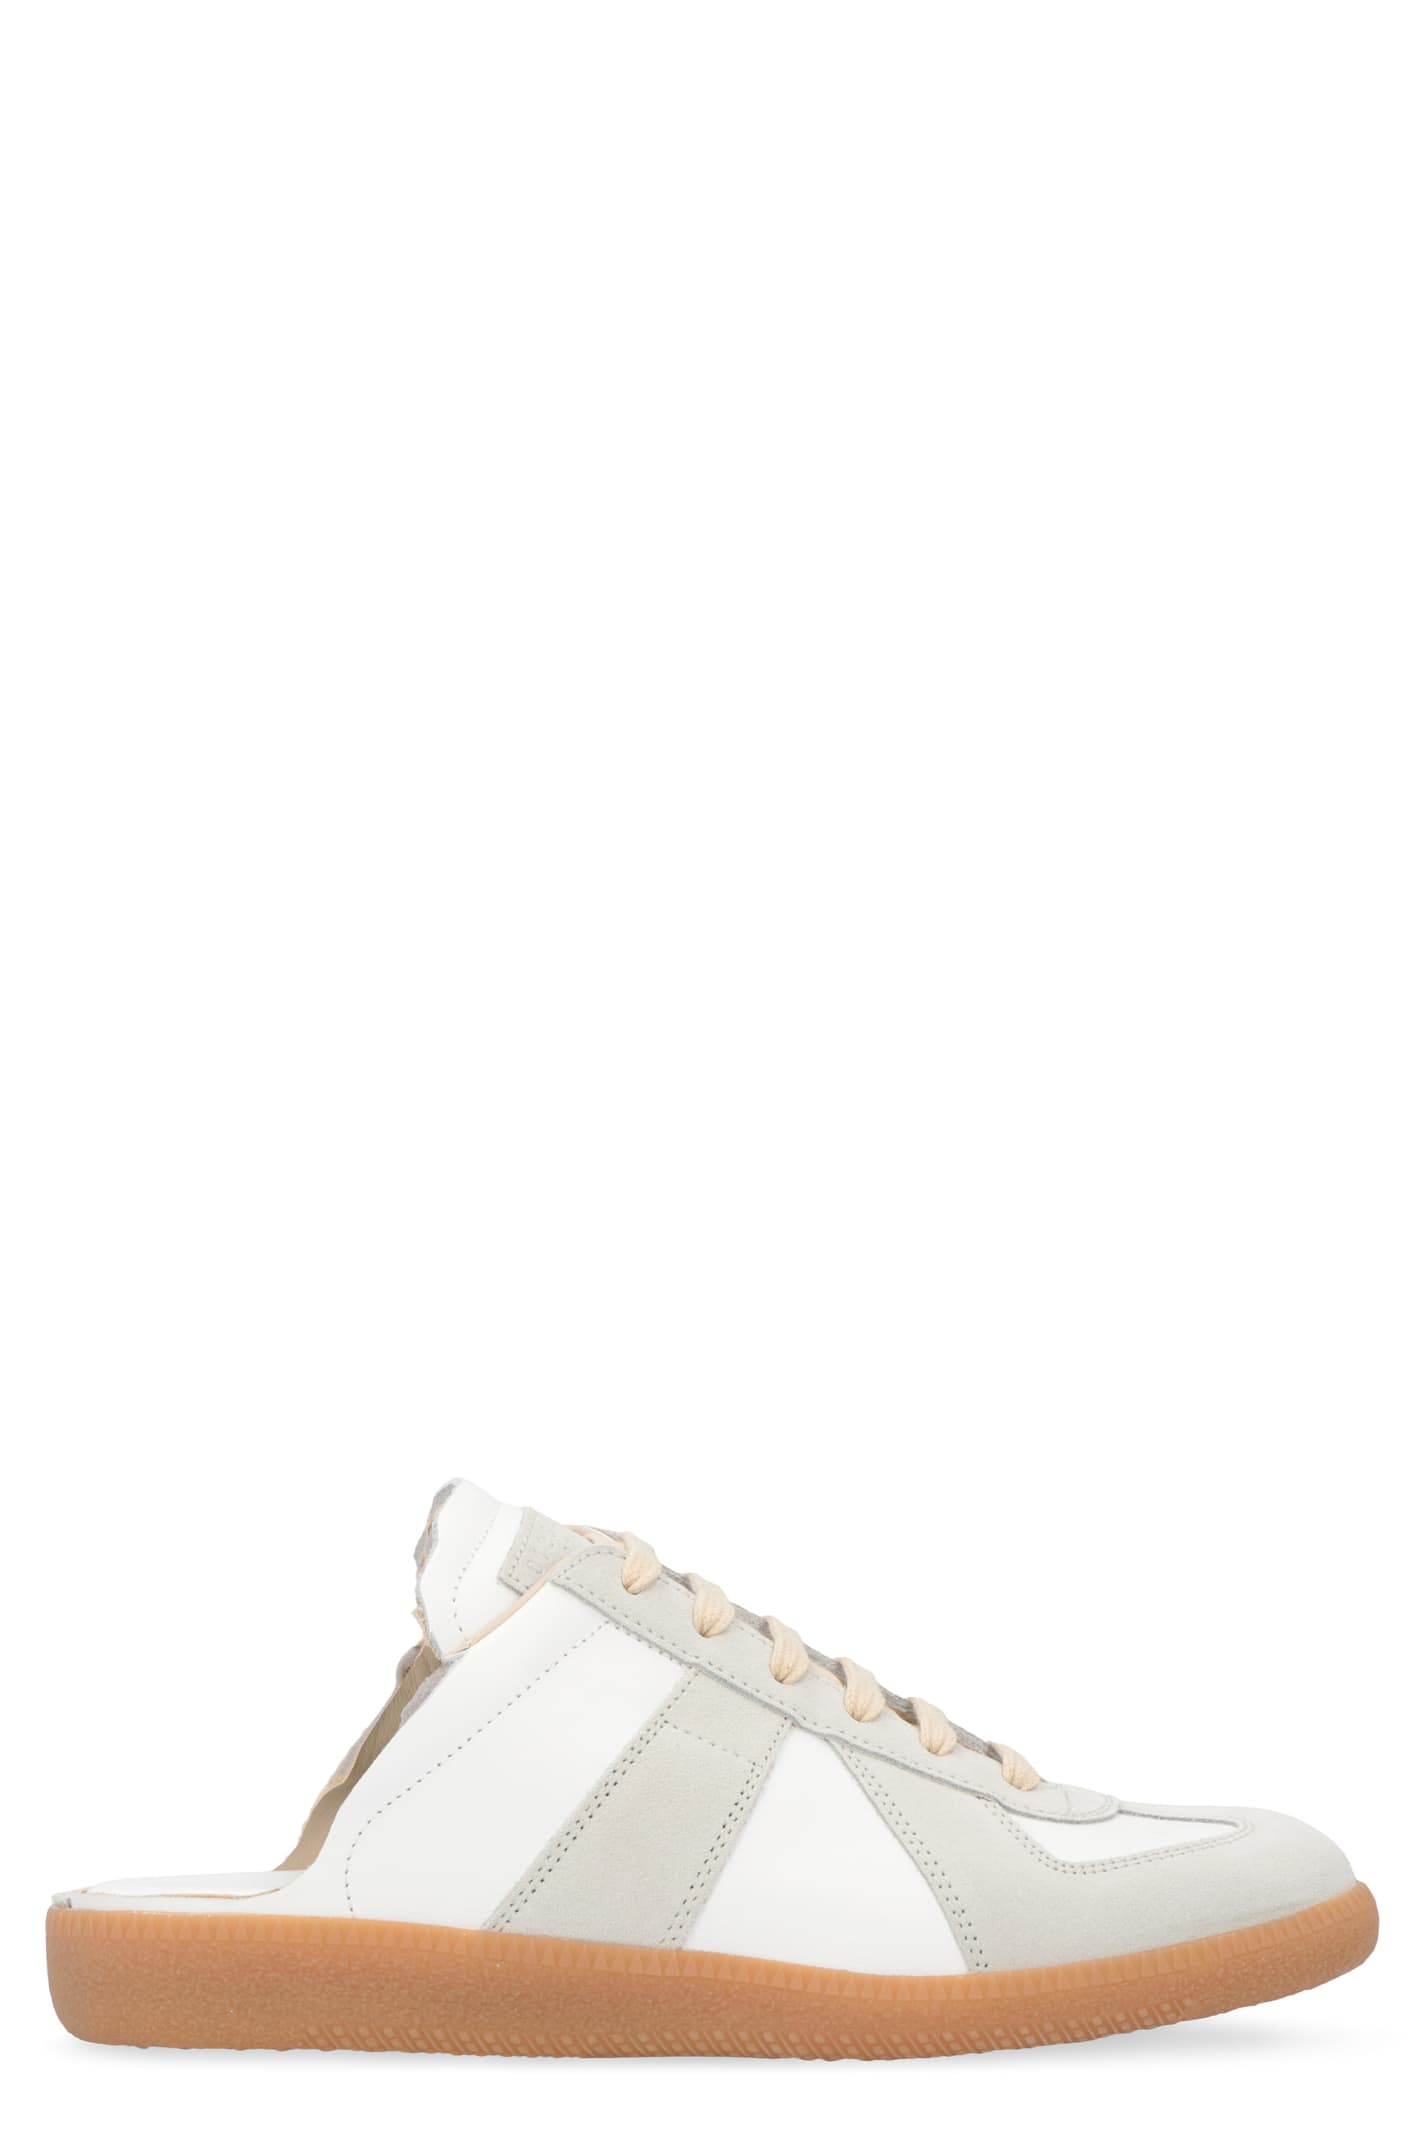 Buy Maison Margiela Replica Leather Sneaker-mules online, shop Maison Margiela shoes with free shipping